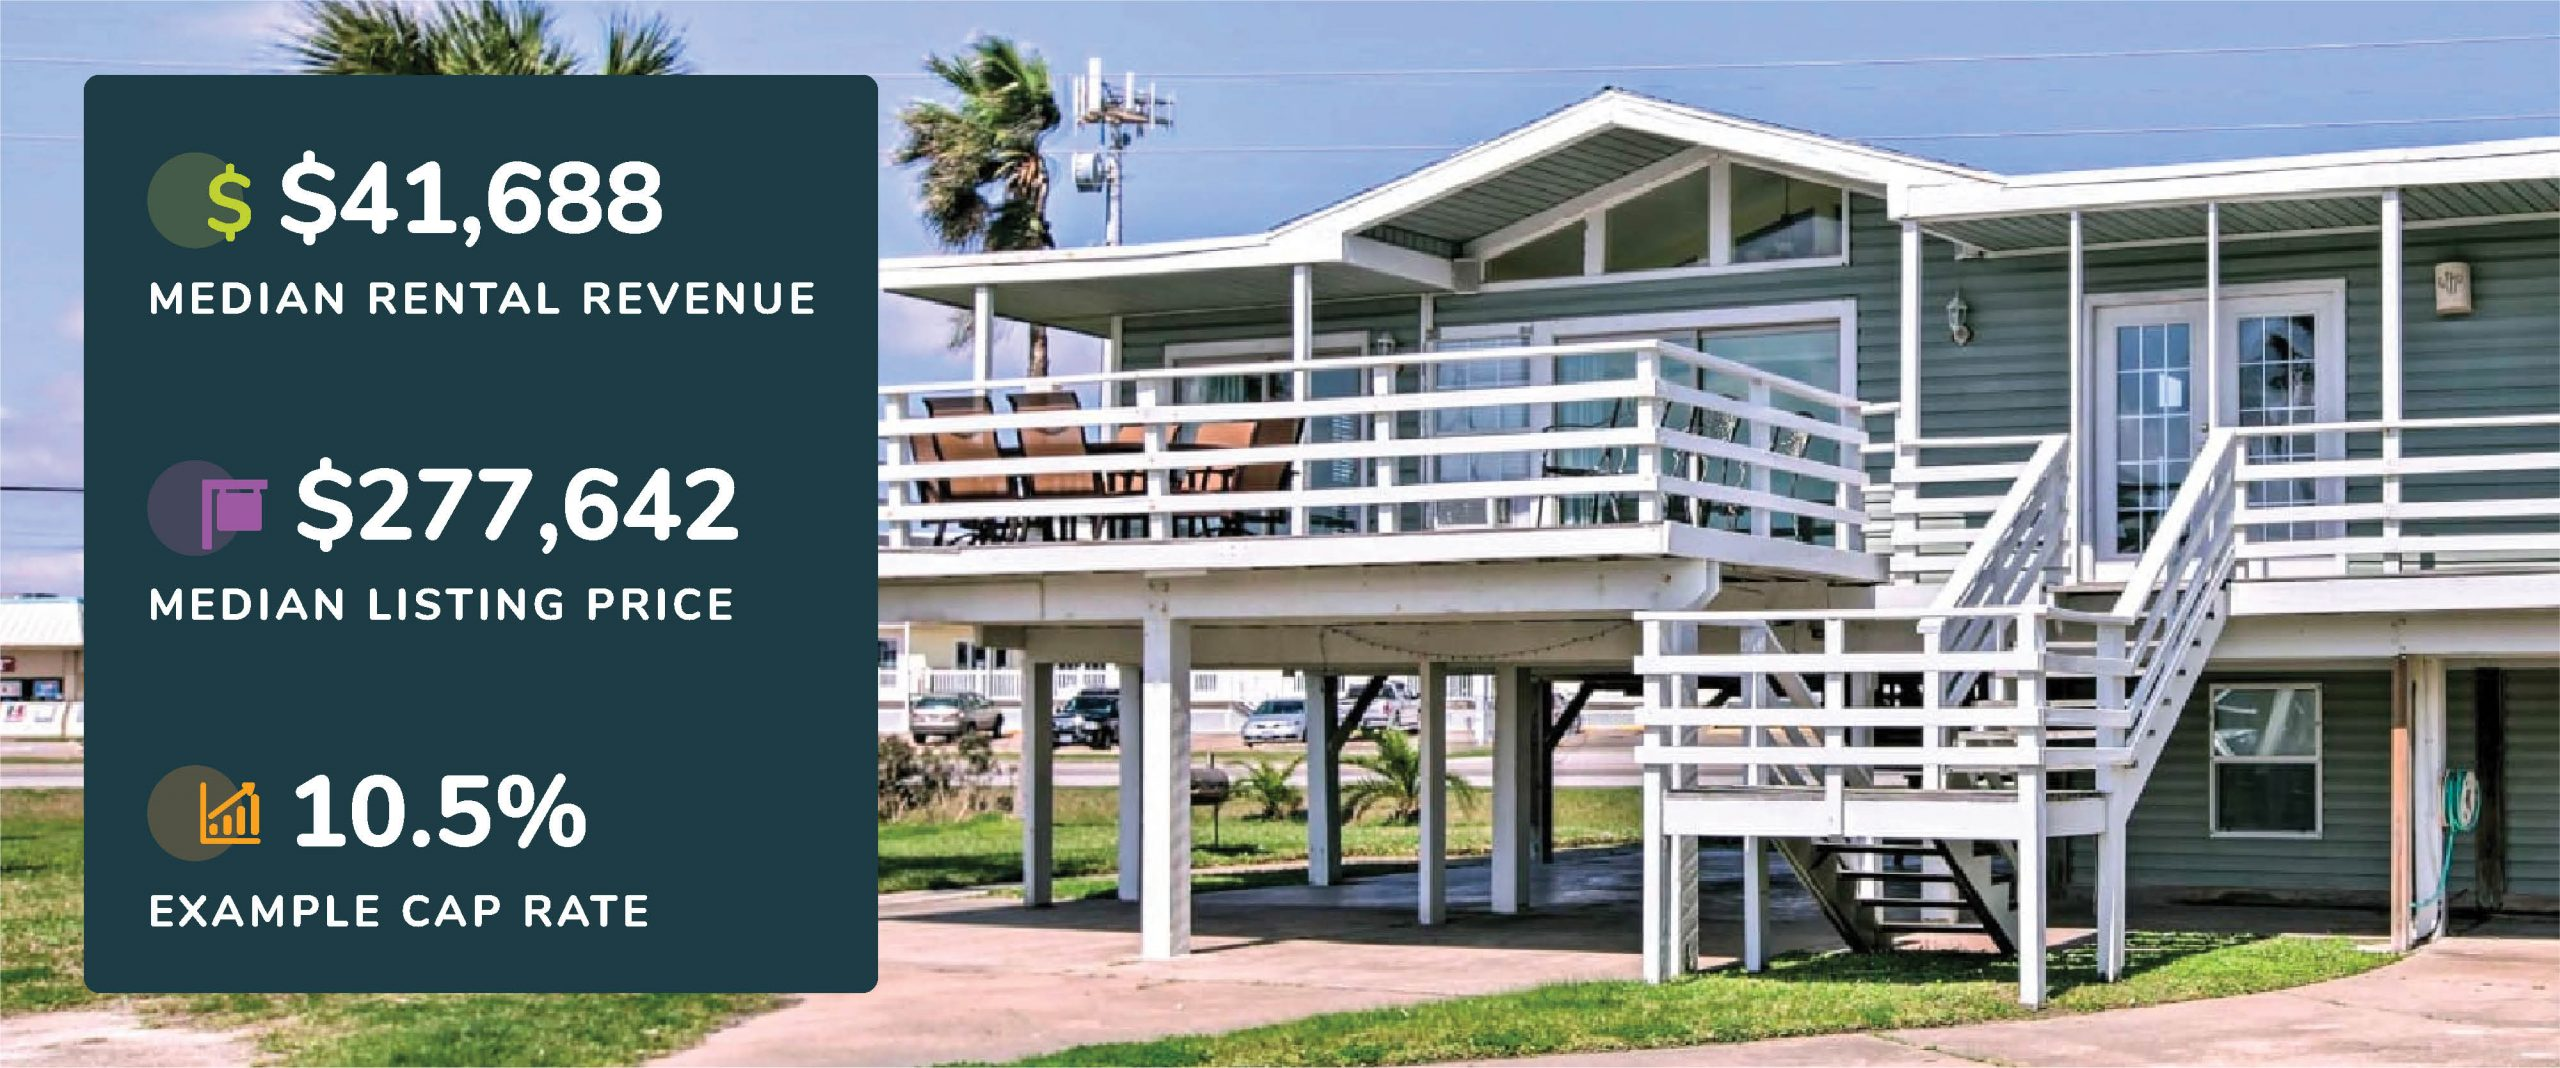 Graphic showing Surfside Beach, Texas median rental revenue, listing price, and example cap rate with a picture of a beach home